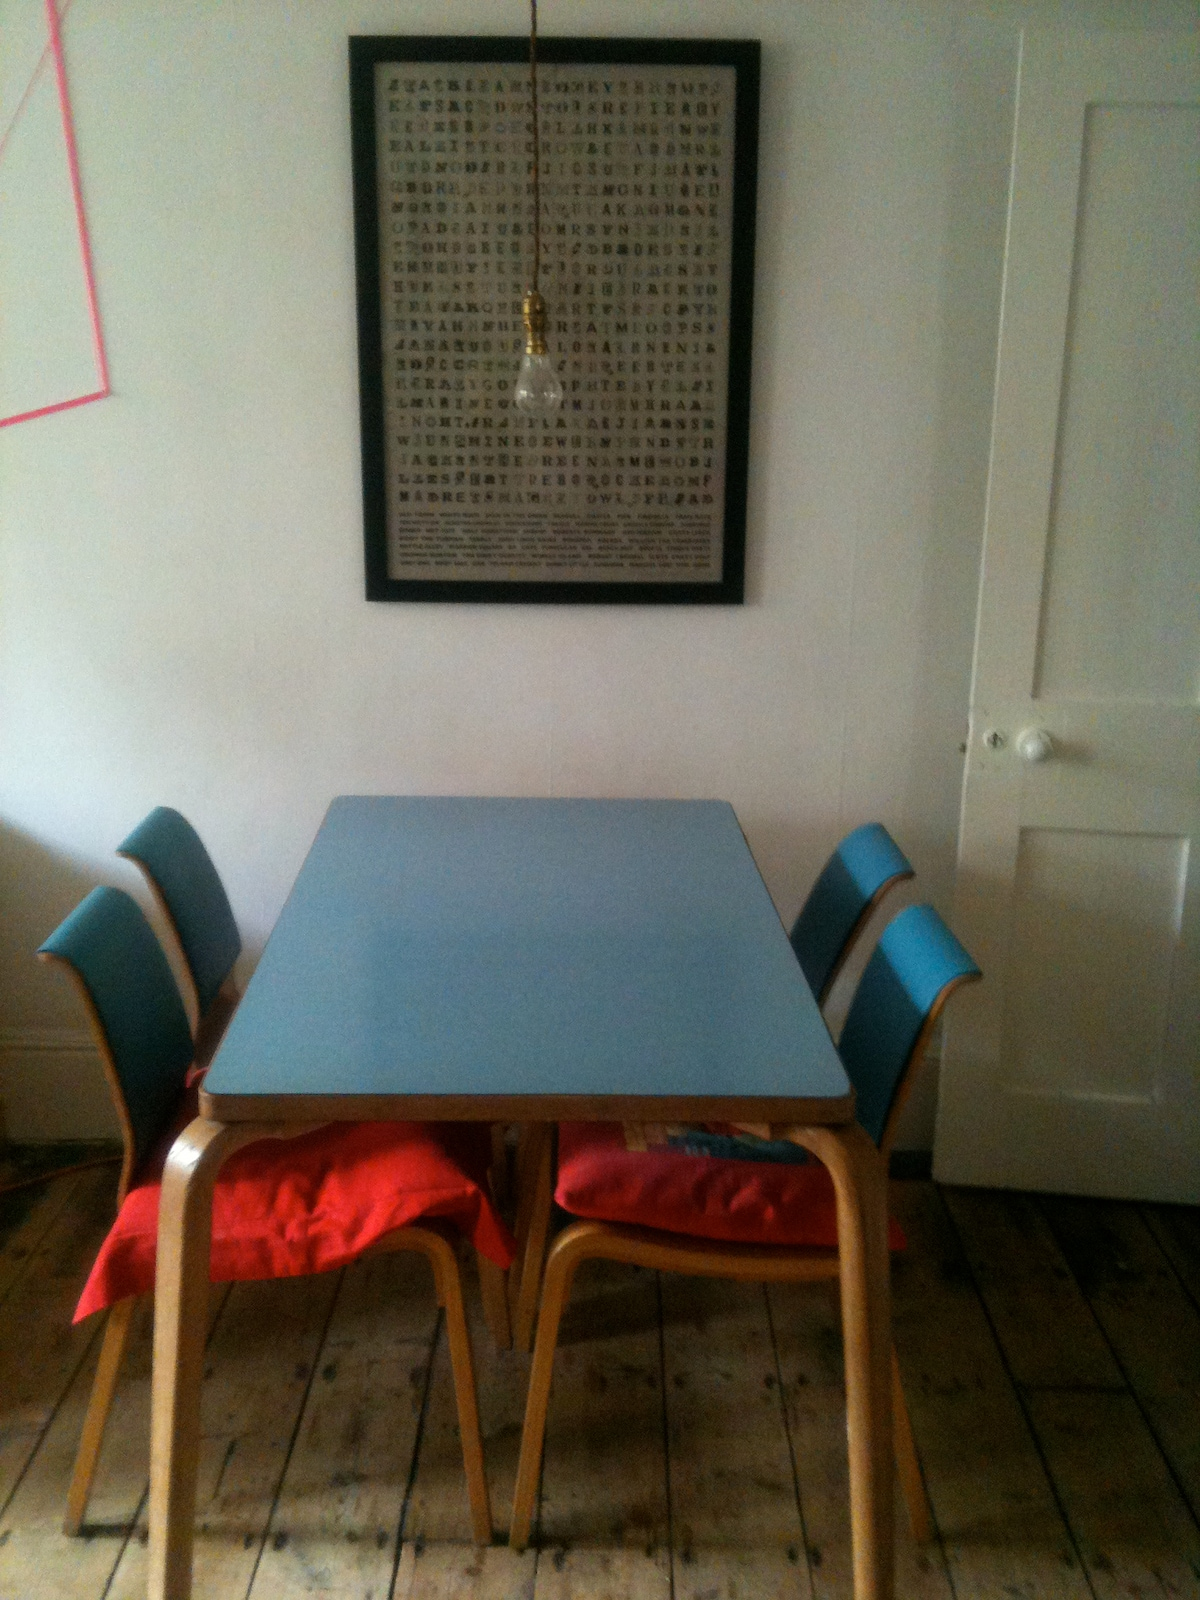 Dining space - there are enough chairs for 6 people.